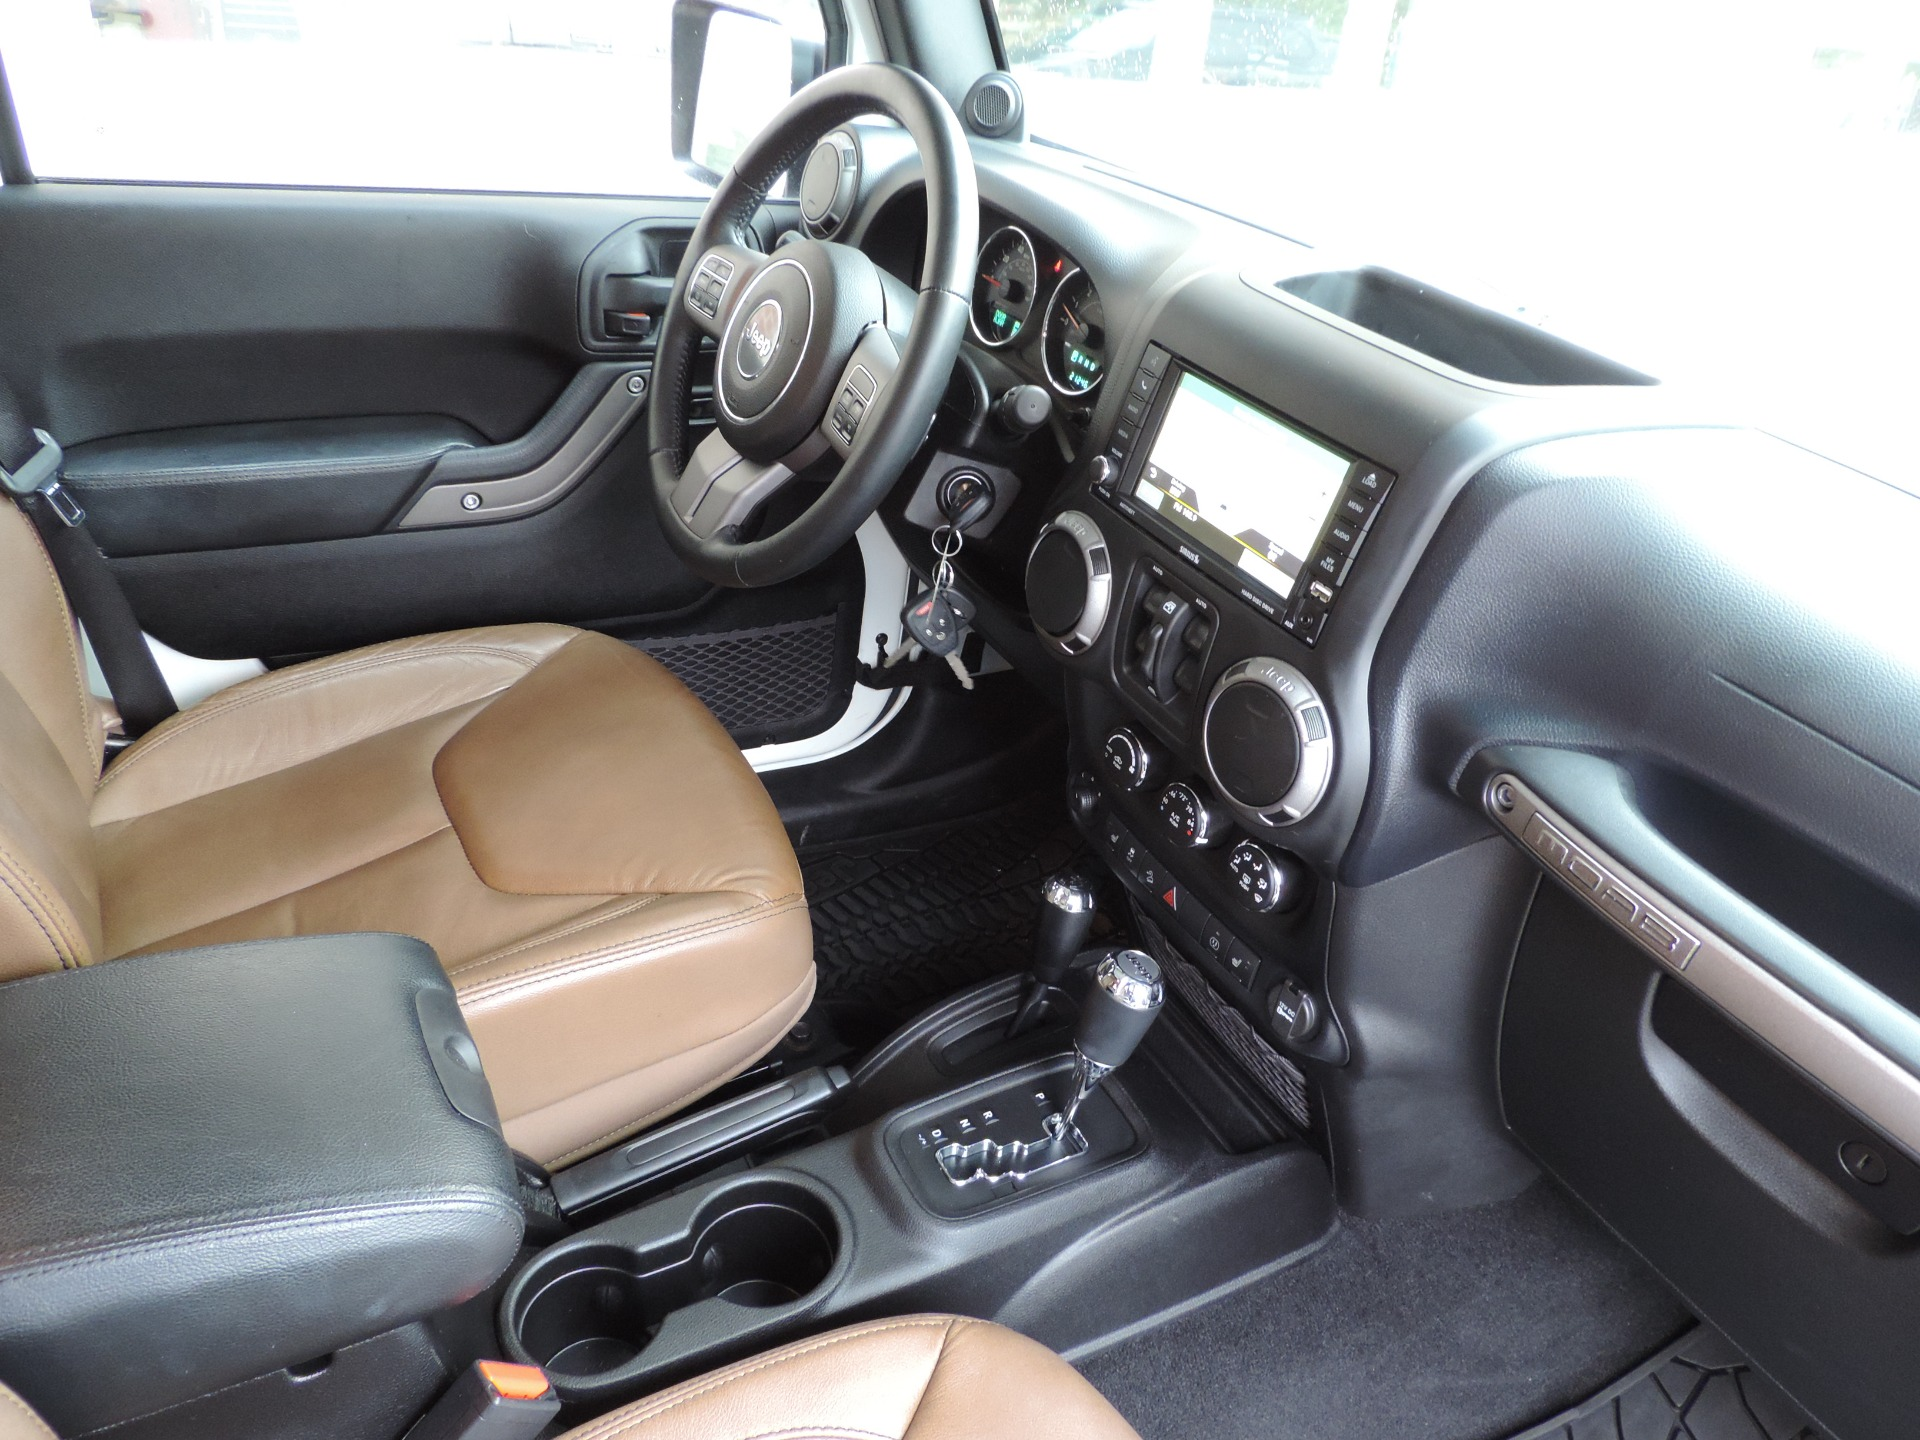 Used-2013-Jeep-Wrangler-Unlimited-Moab--Navigation--Leather